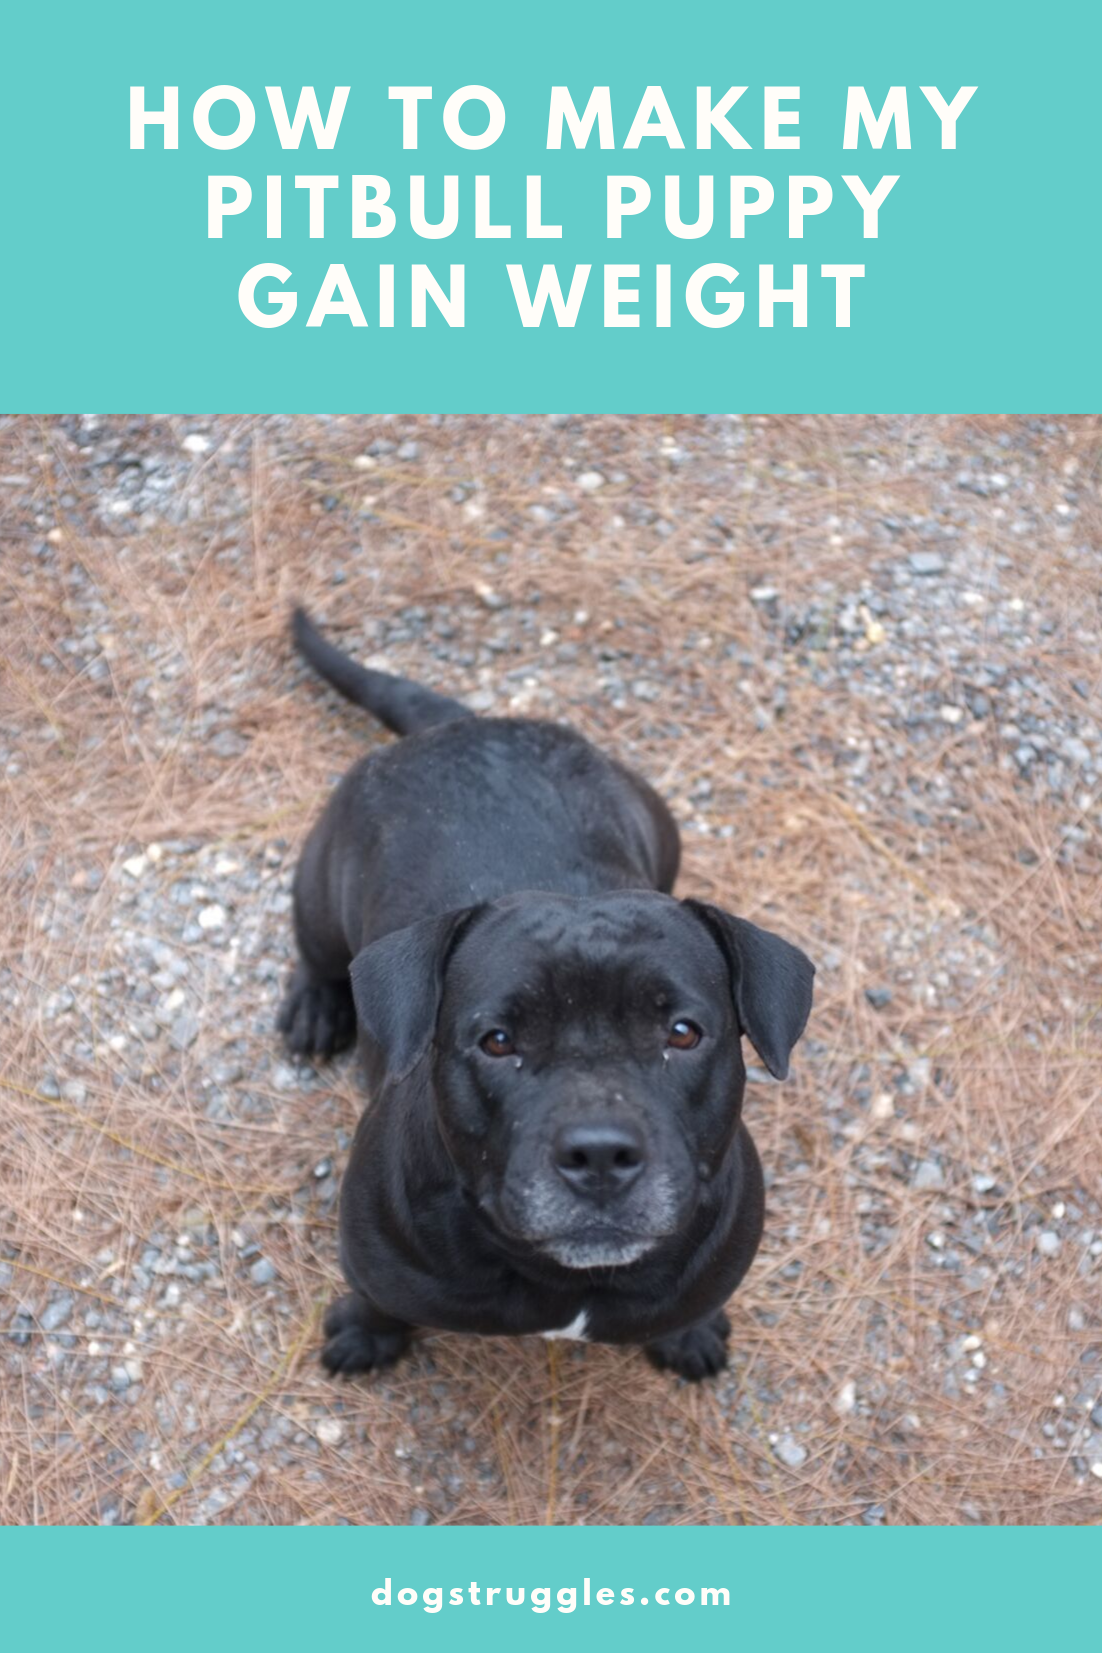 how to make a pitbull puppy gain weight